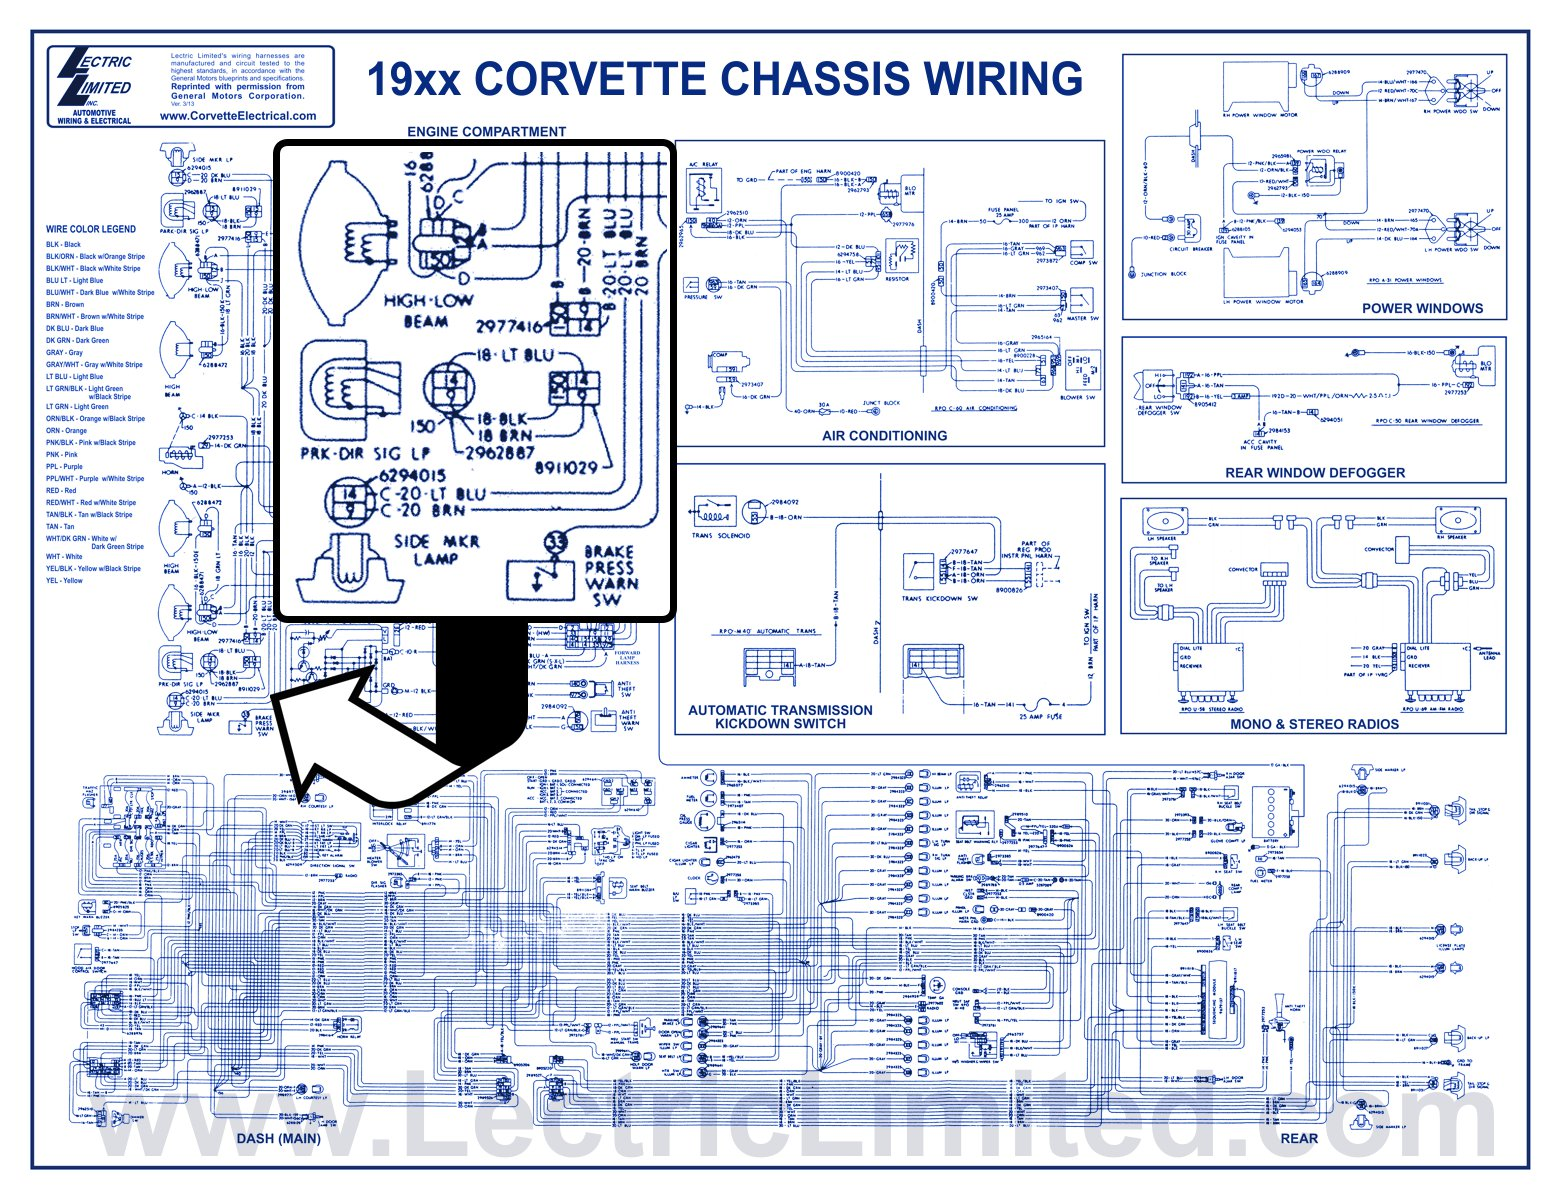 1976 corvette dash wiring diagram 88 toyota 22re engine 63 schematic fuse box library 1969 instrument panel trusted